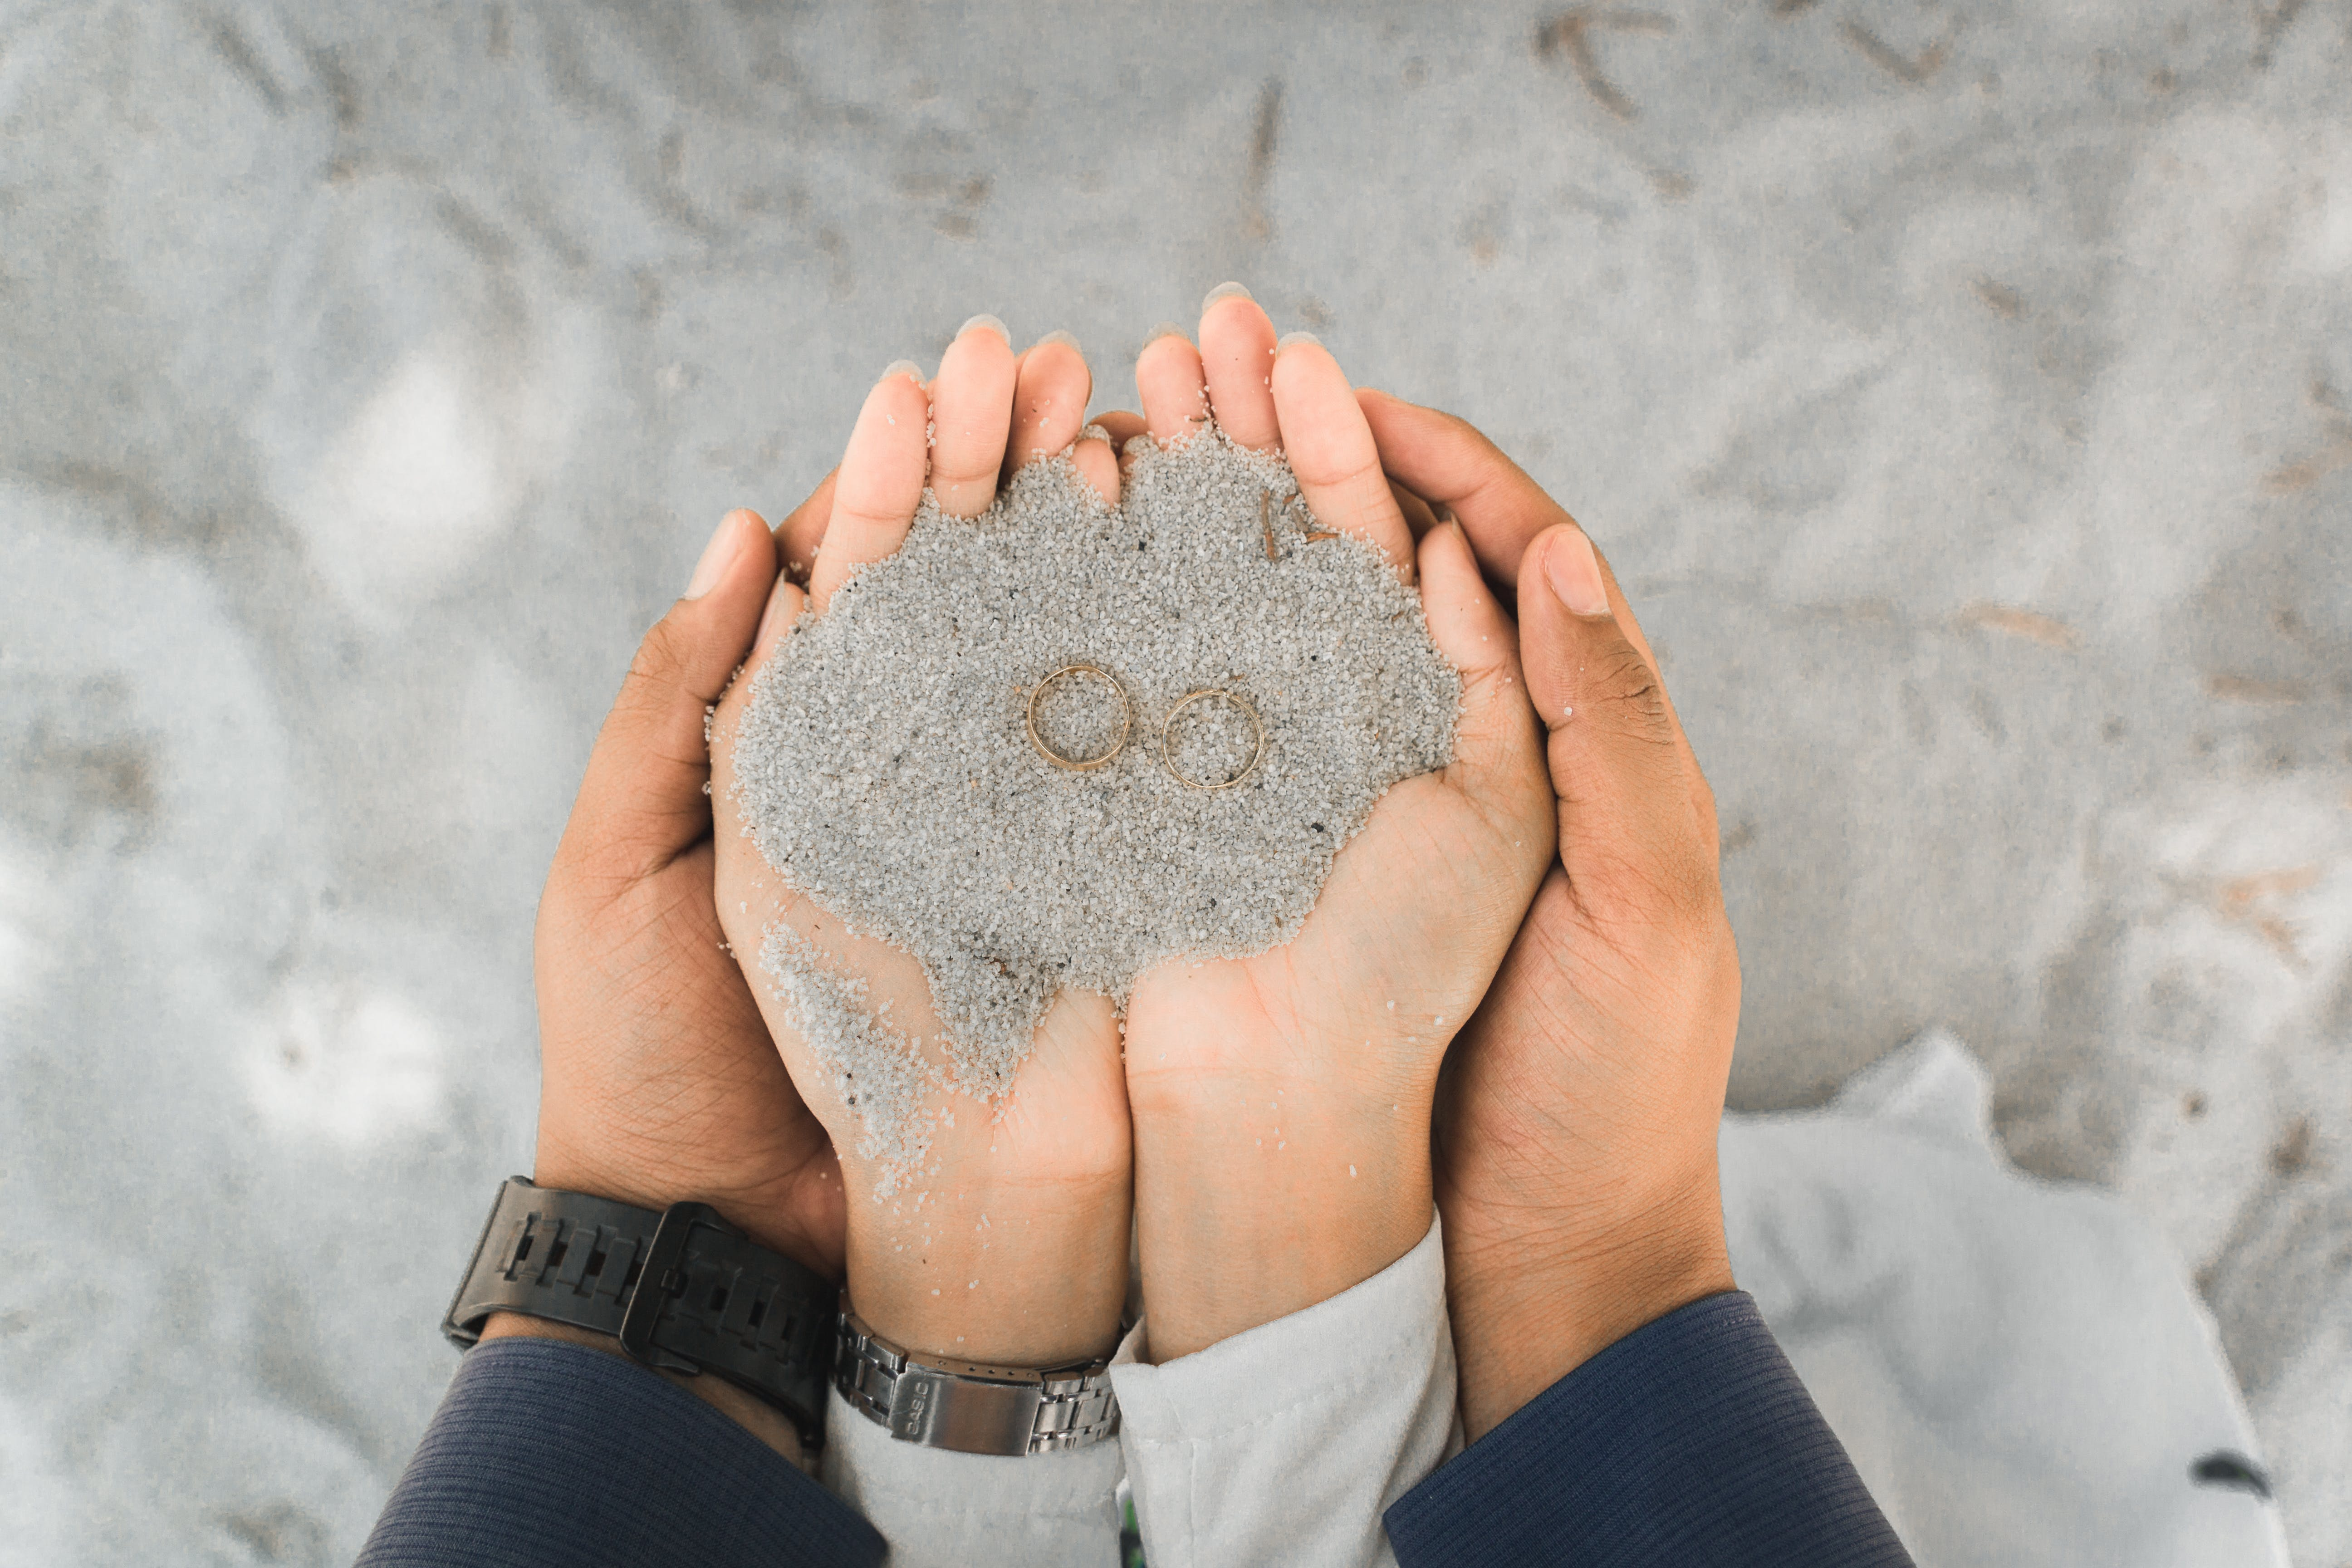 Two Person's Hands Holding a Sand